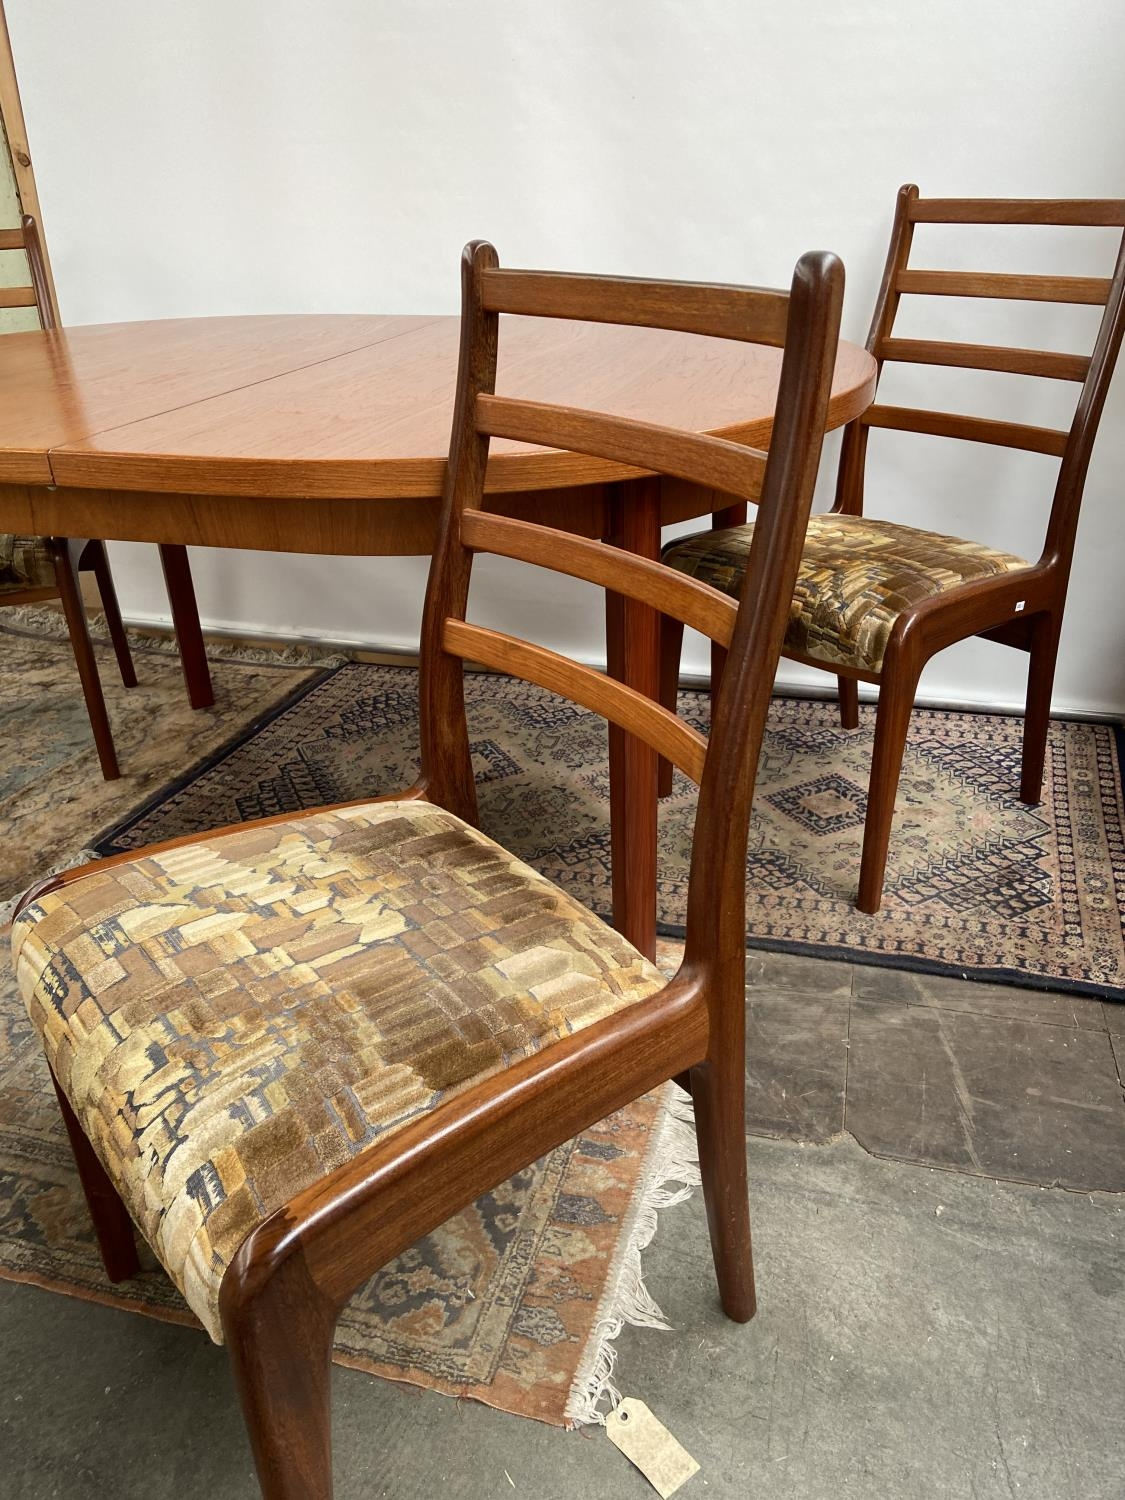 A mid century table & 4 chairs [74x150x100cm] [chair height, 92cm] - Image 4 of 7